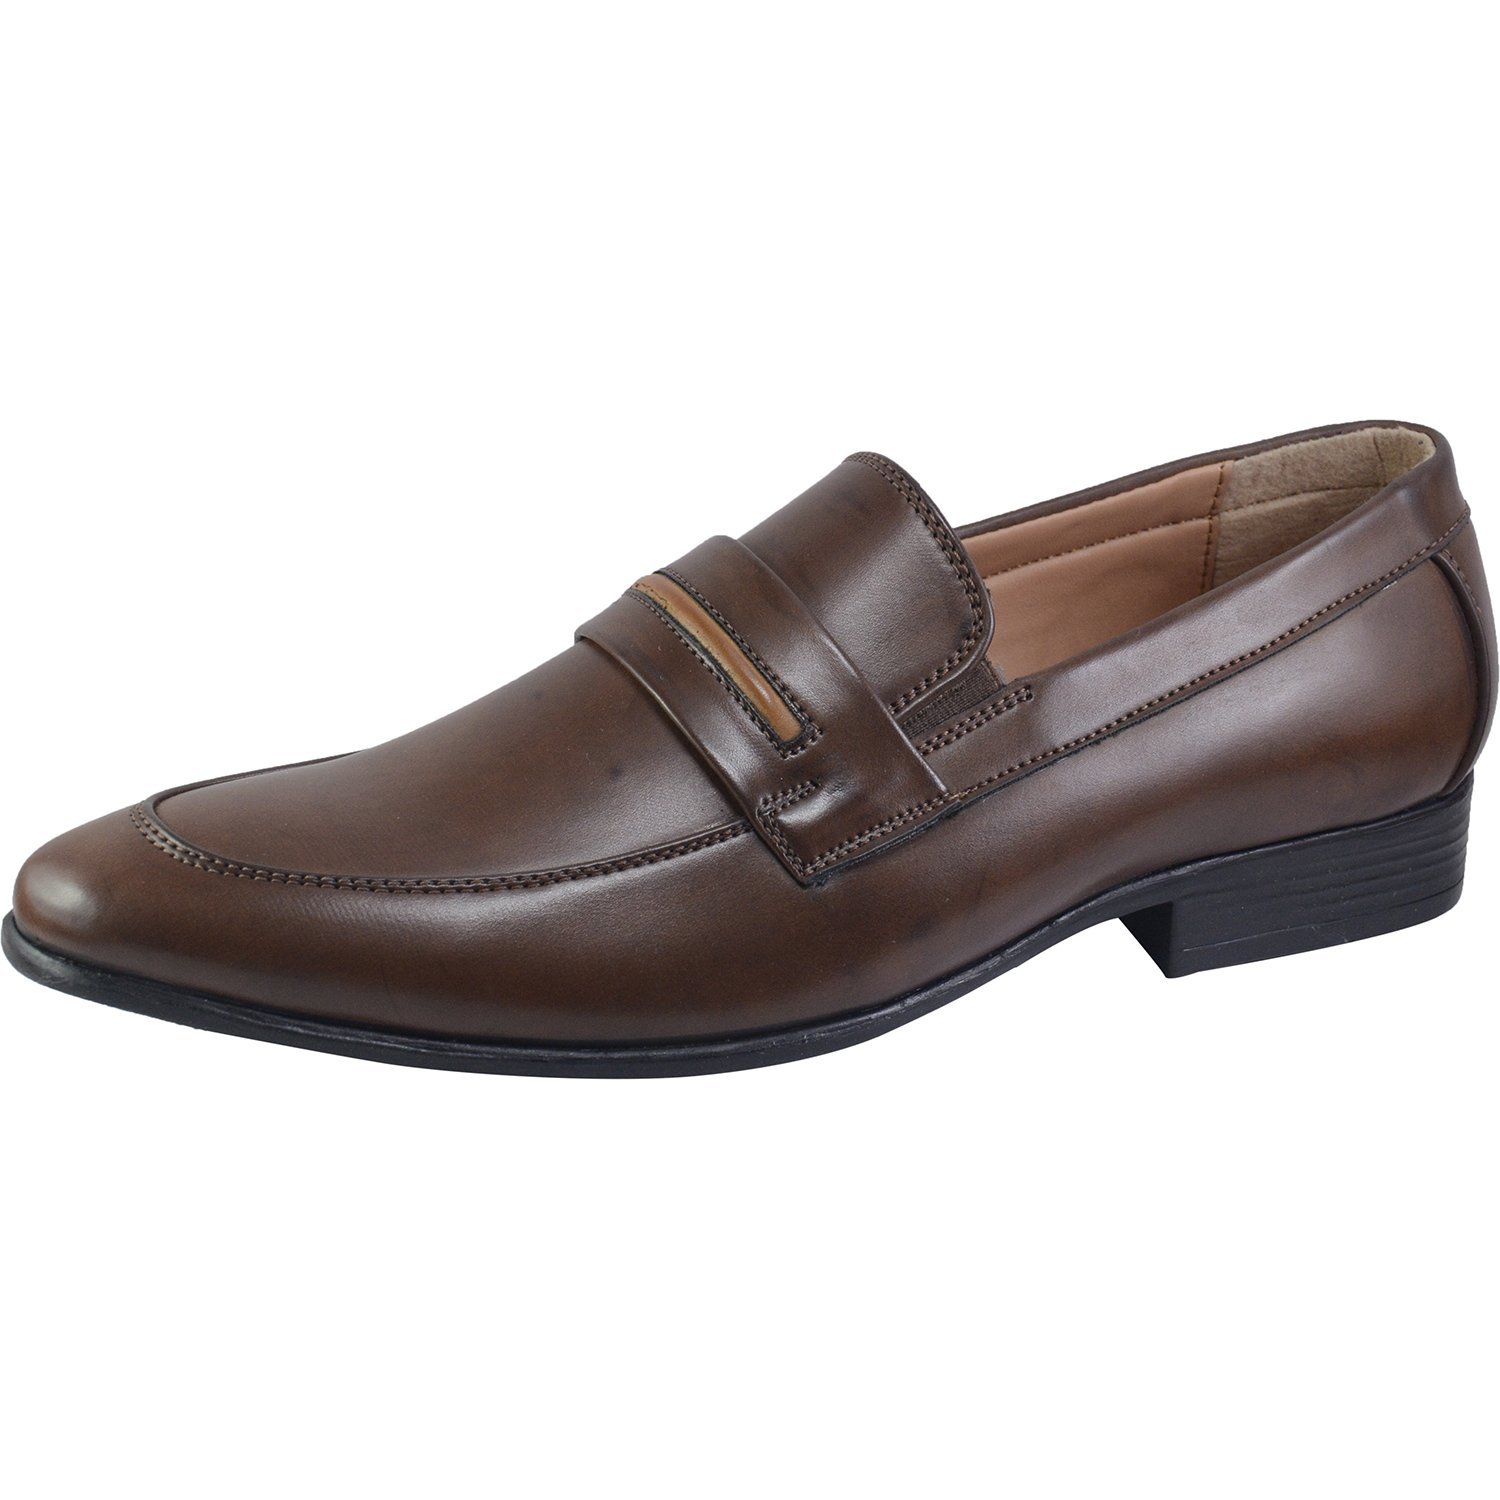 Vonzo Mens Business Slip-on Dress Shoes Semi-Formal Oxford